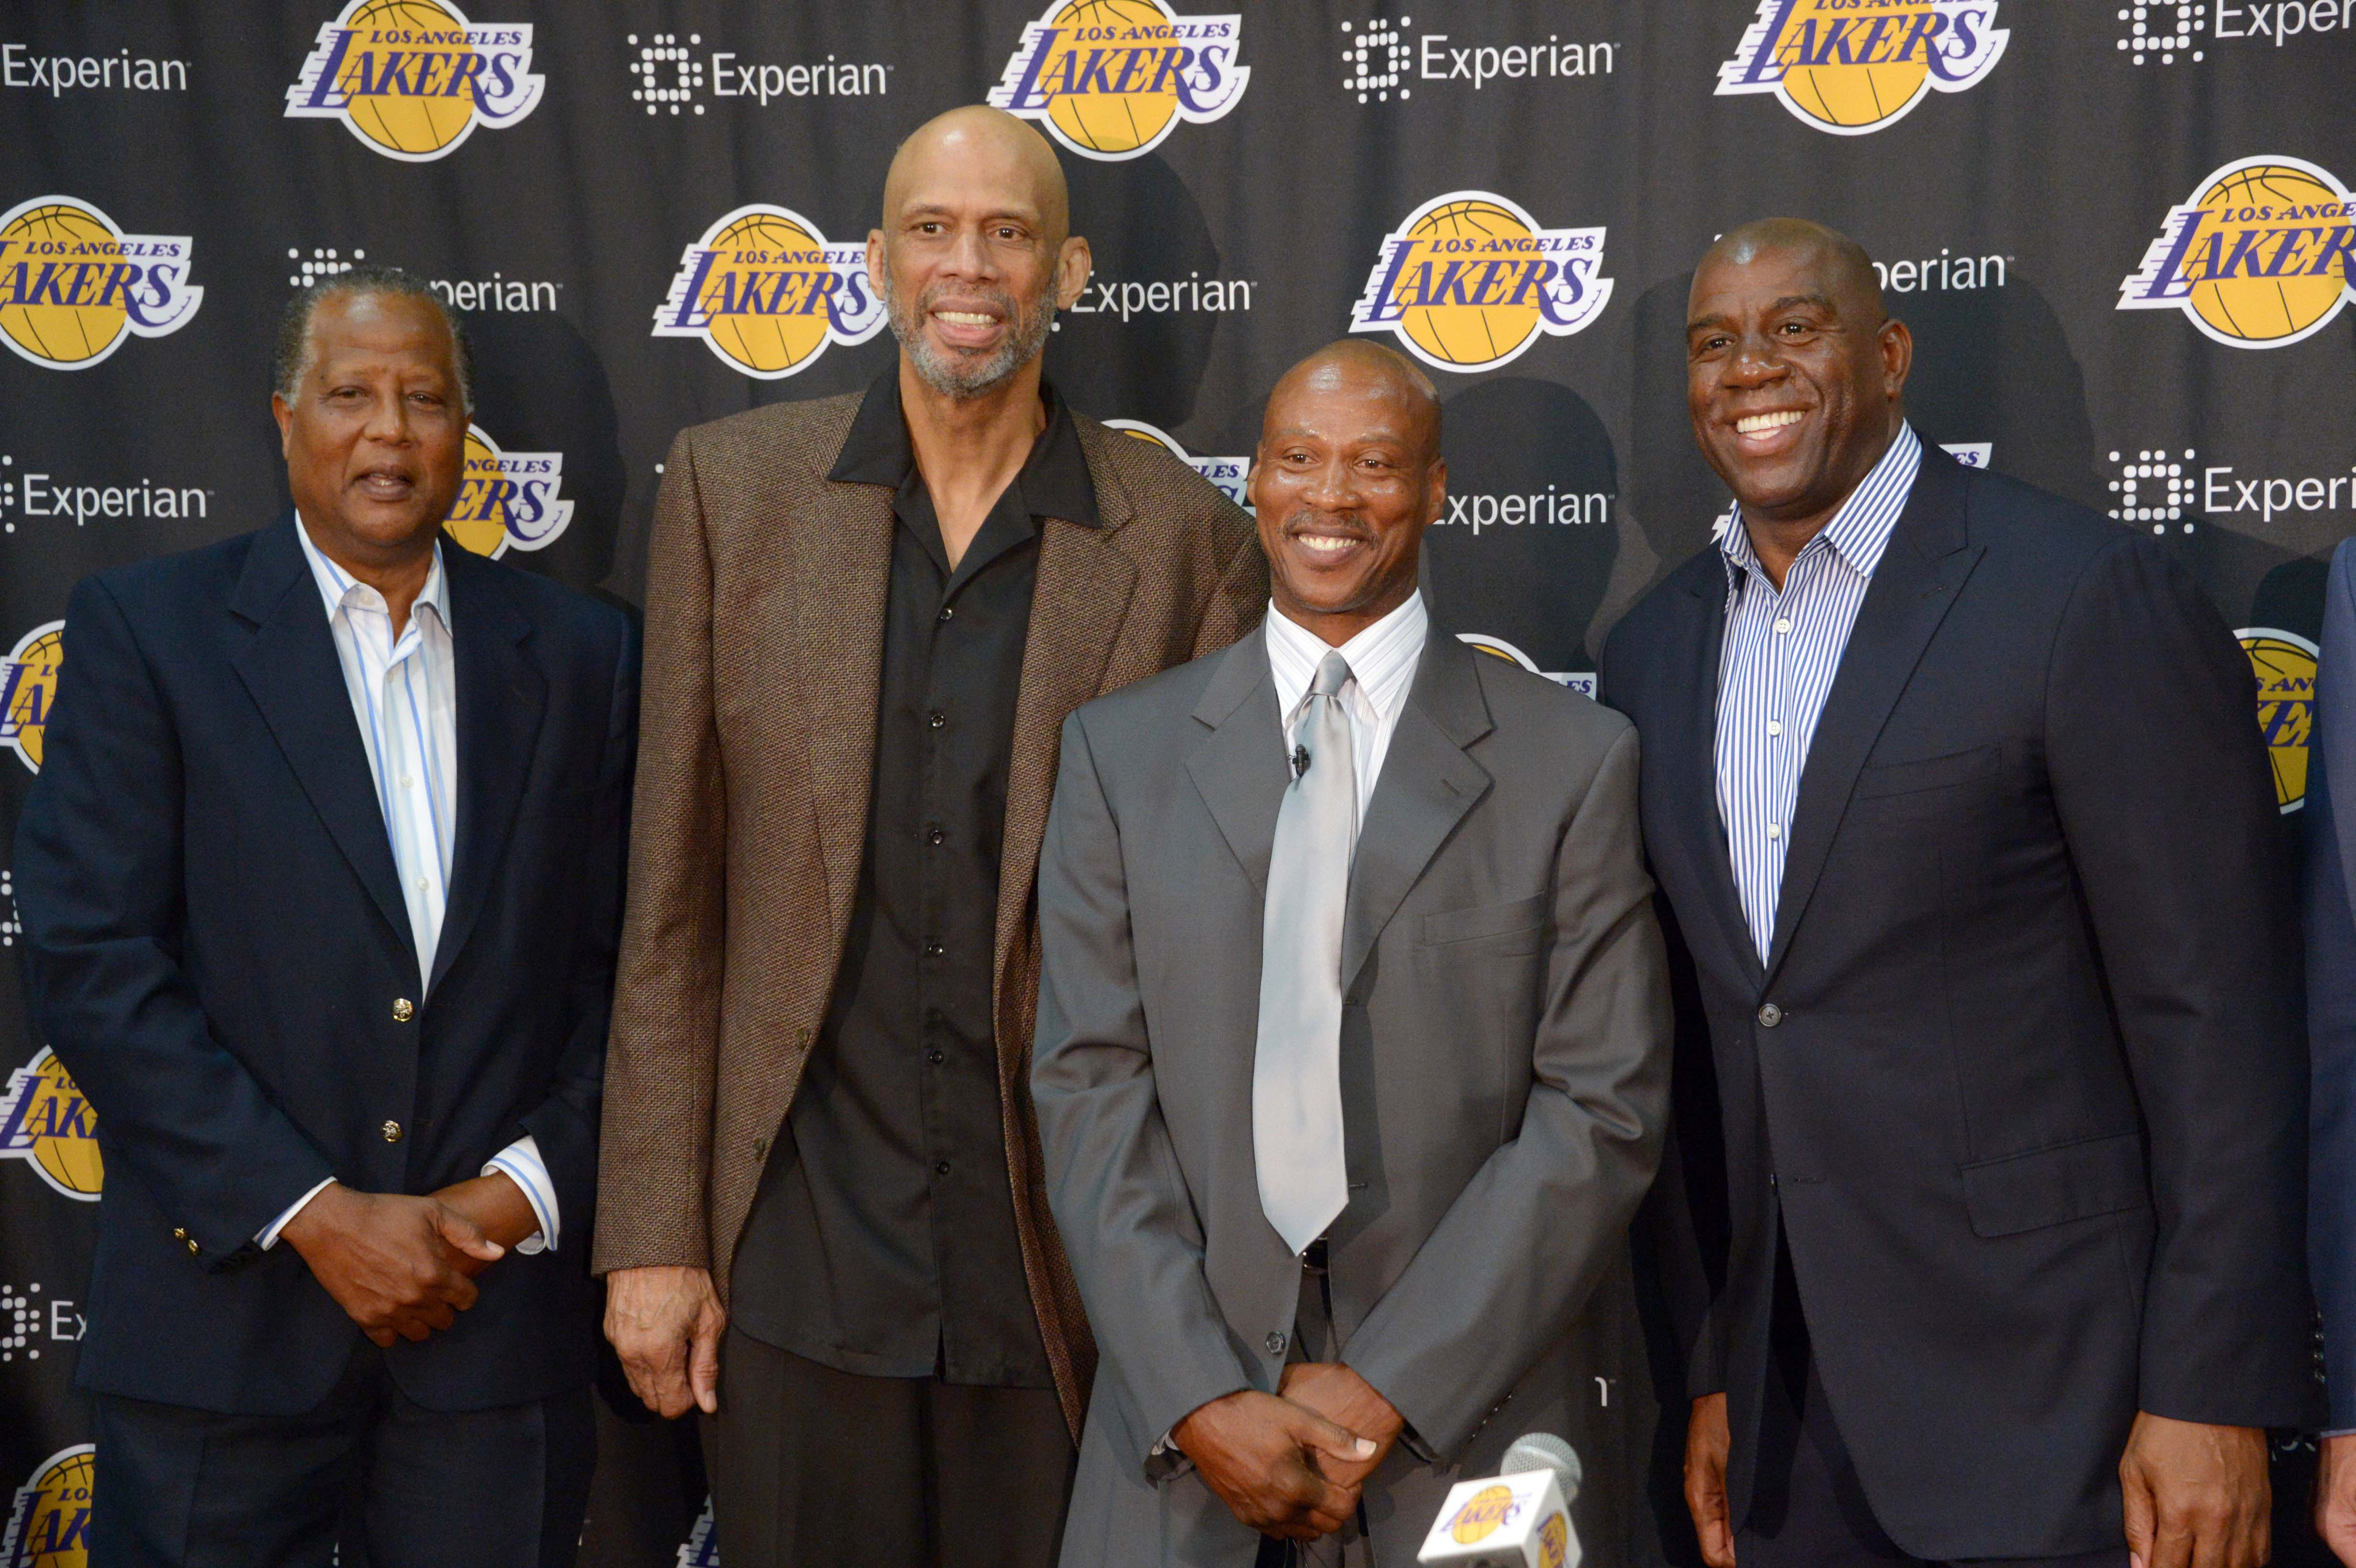 New coach Scott eyes swift return to contention for Lakers